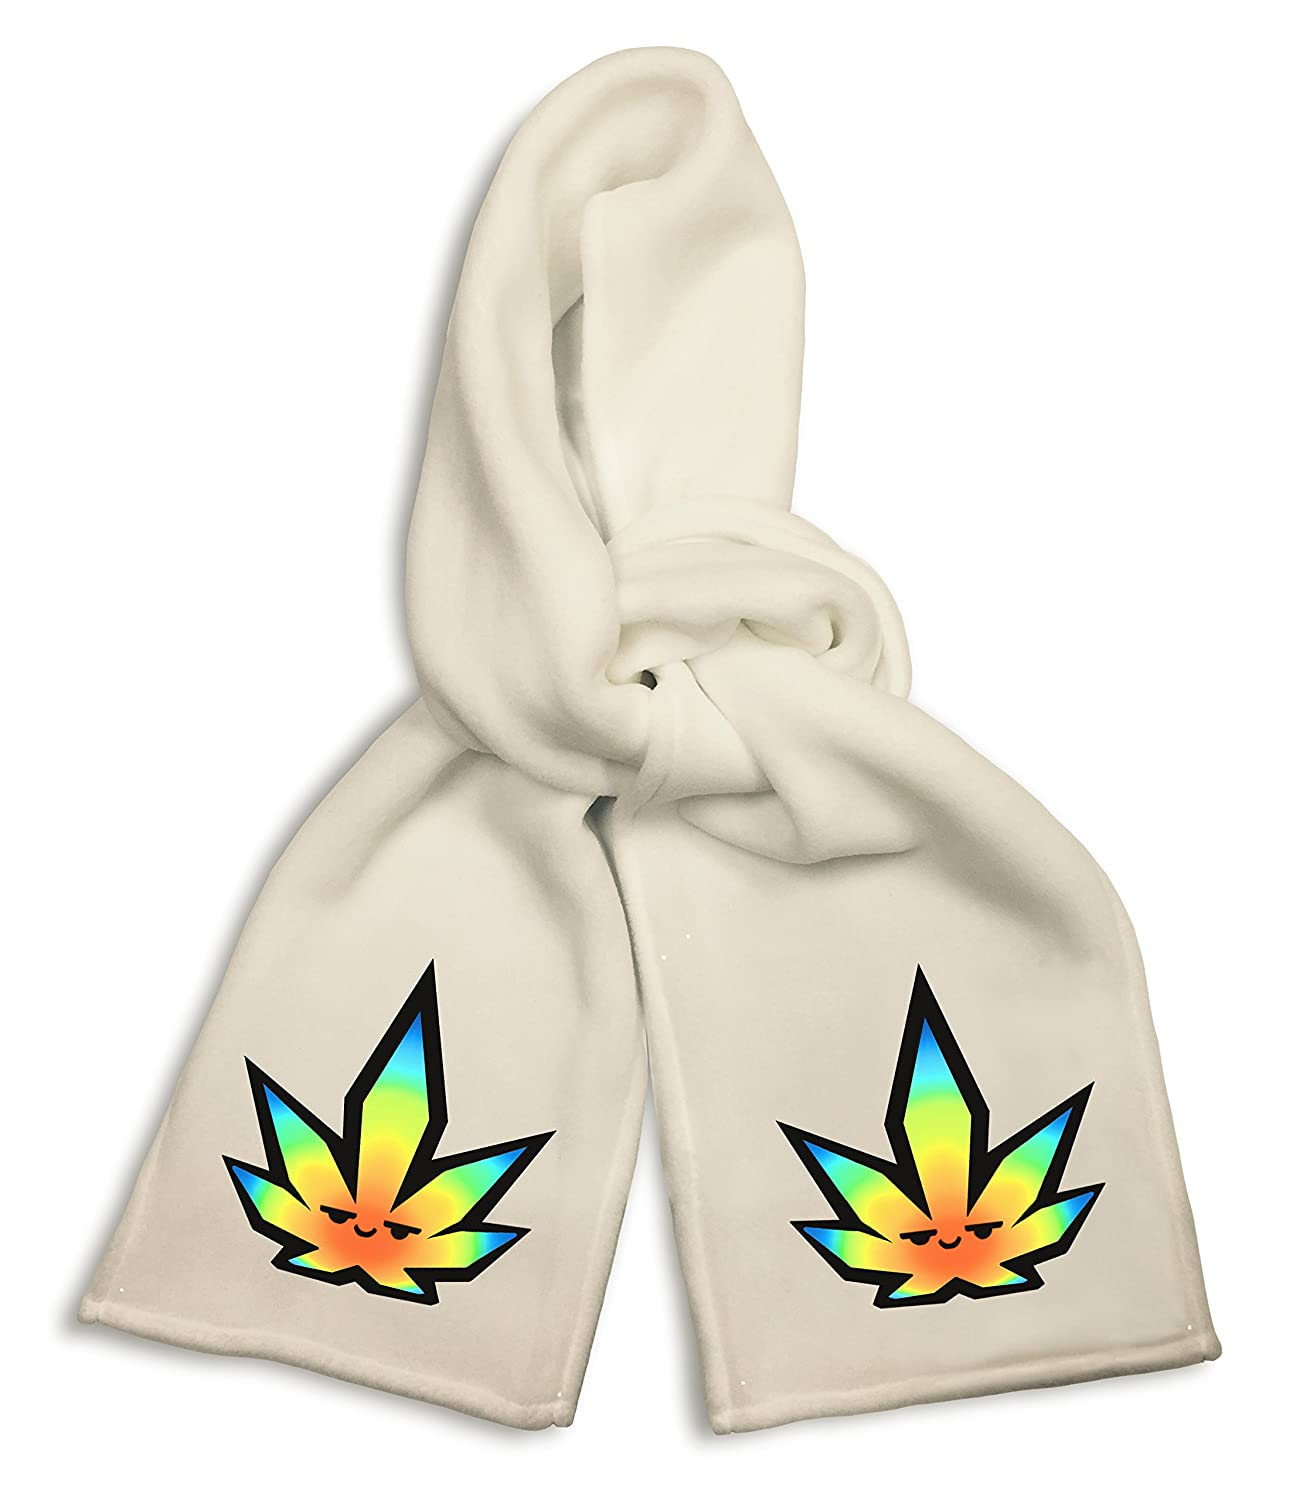 White Winter Scarf Pot Smoking Pals Pot Leaf